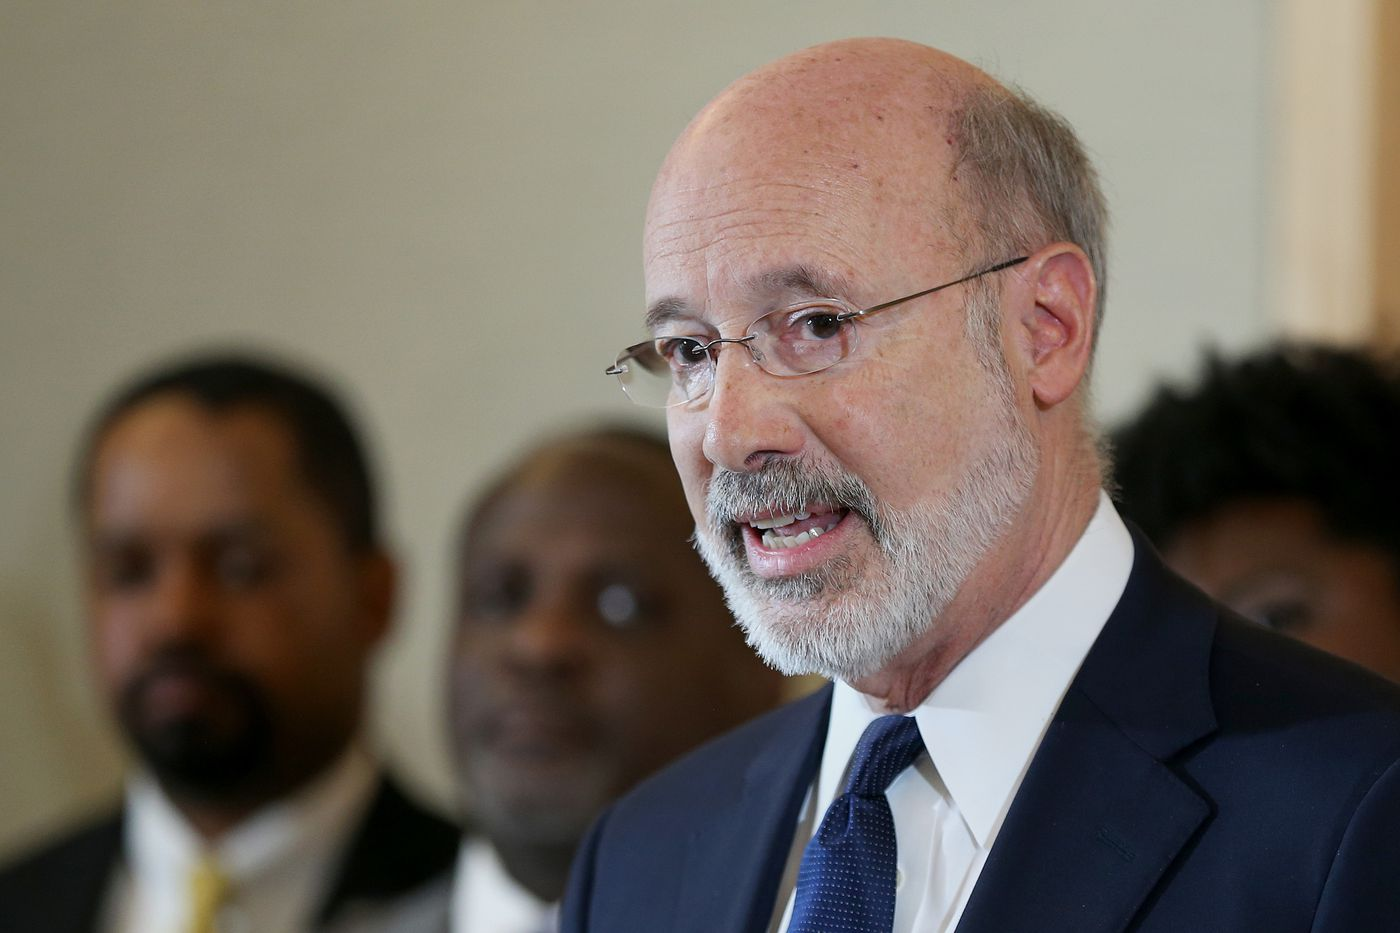 Gov. Wolf raises Pa. minimum wage for state employees to $12 per hour, $15 per hour by 2024